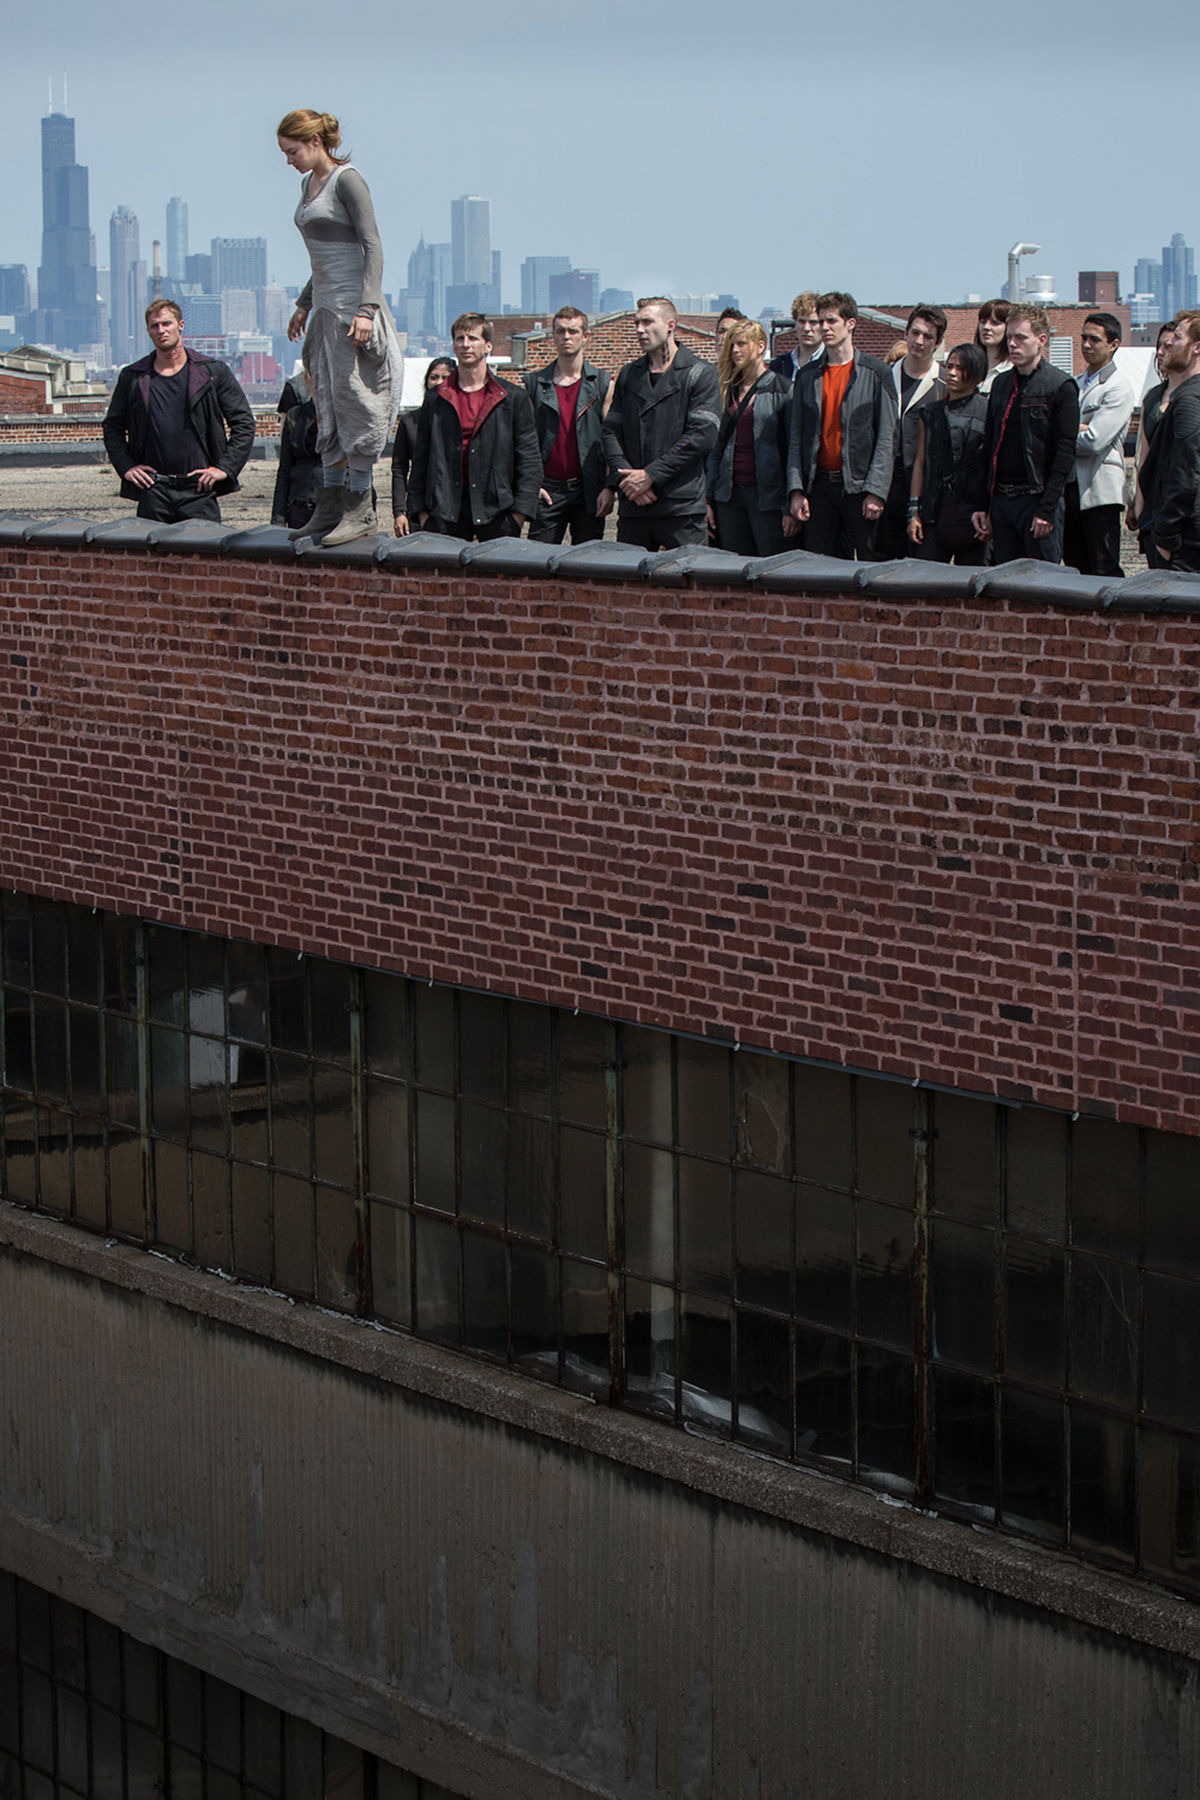 Shailene Woodley on a rooftop in Divergent  Divergent Movie Image Gallery: Shailene Woodley Gets Tough